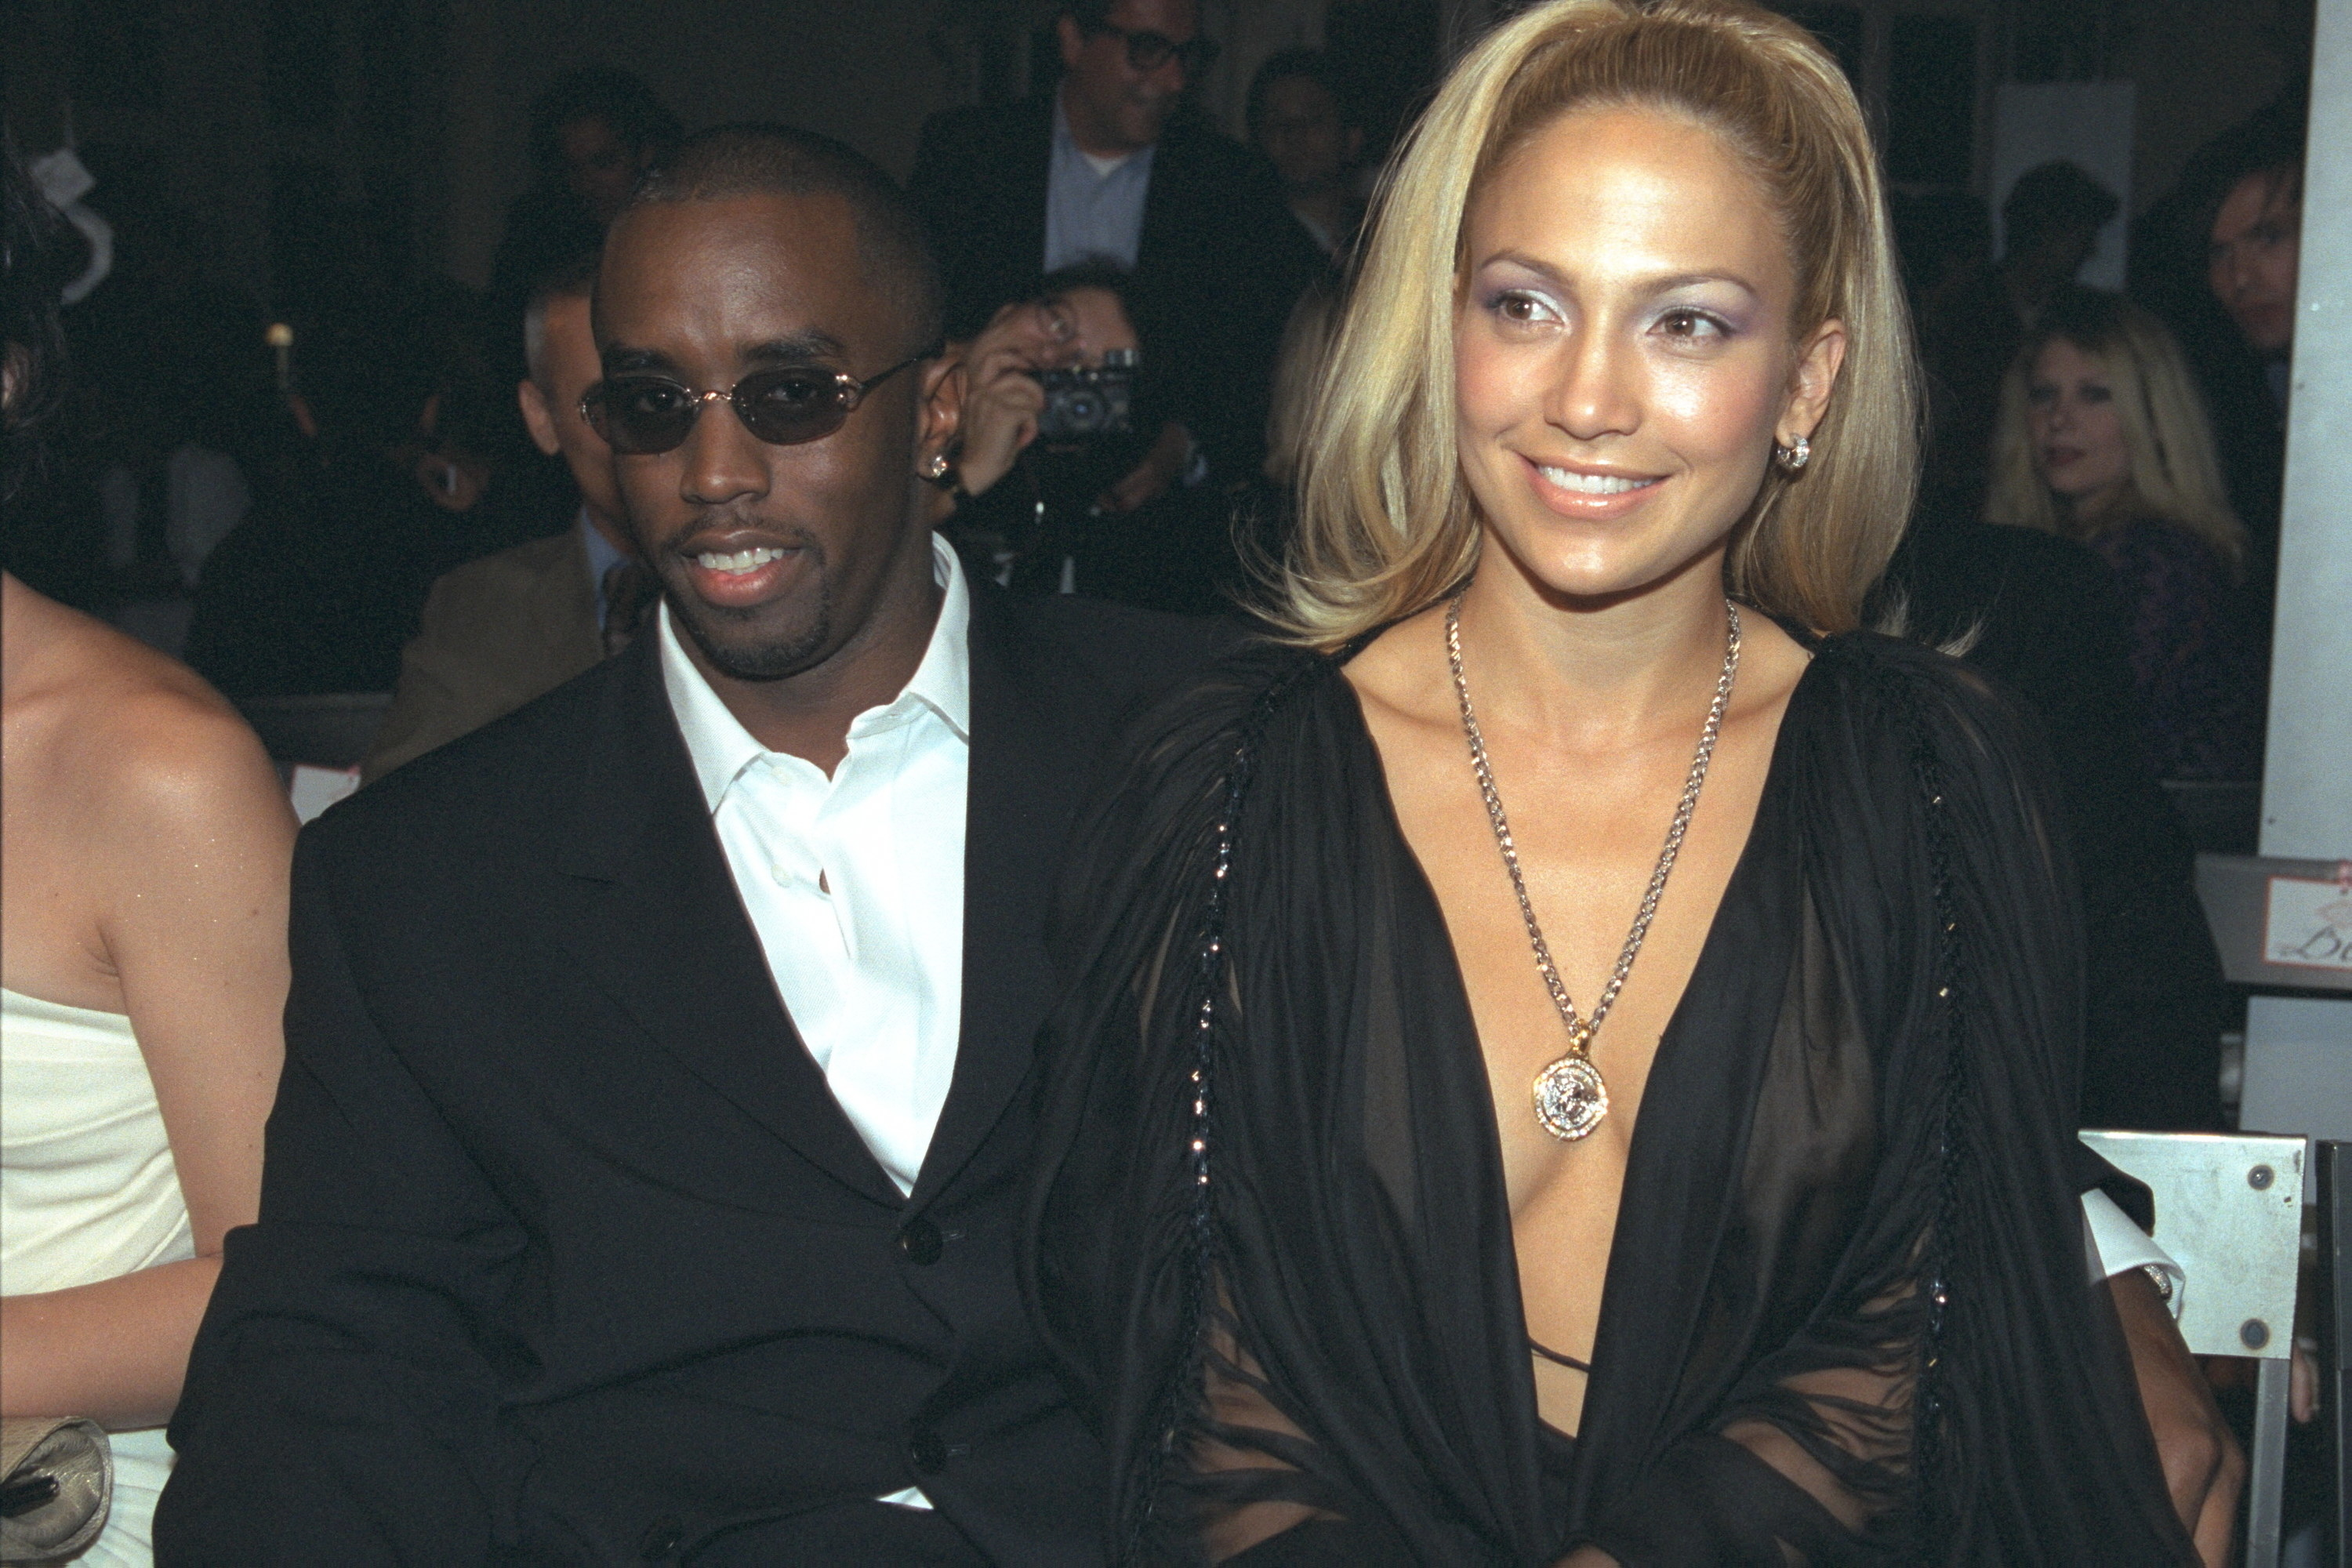 Jennifer and Diddy smile while sitting close together at an event